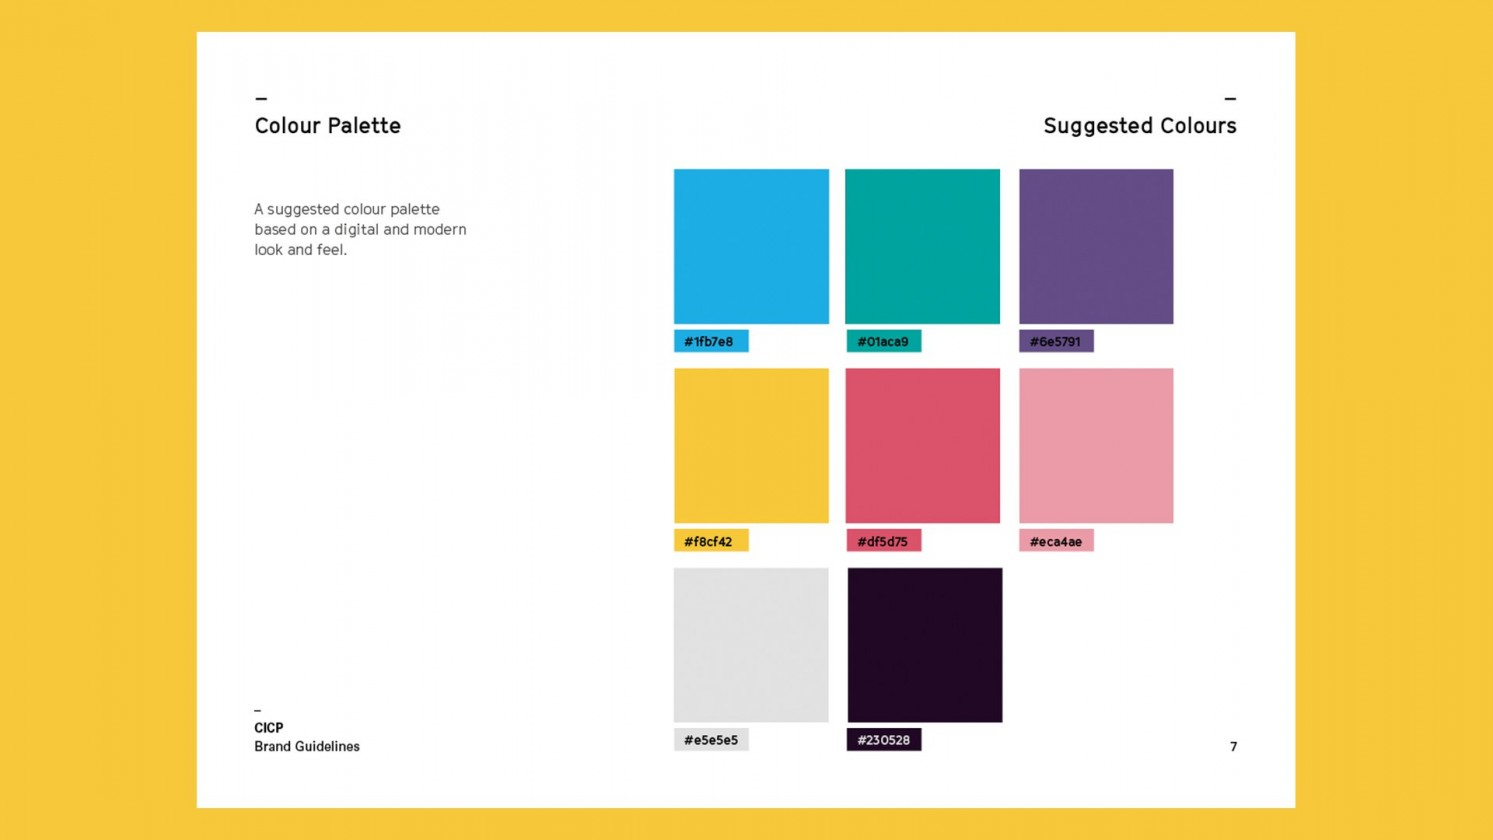 CICP brand colours from brand guidelines